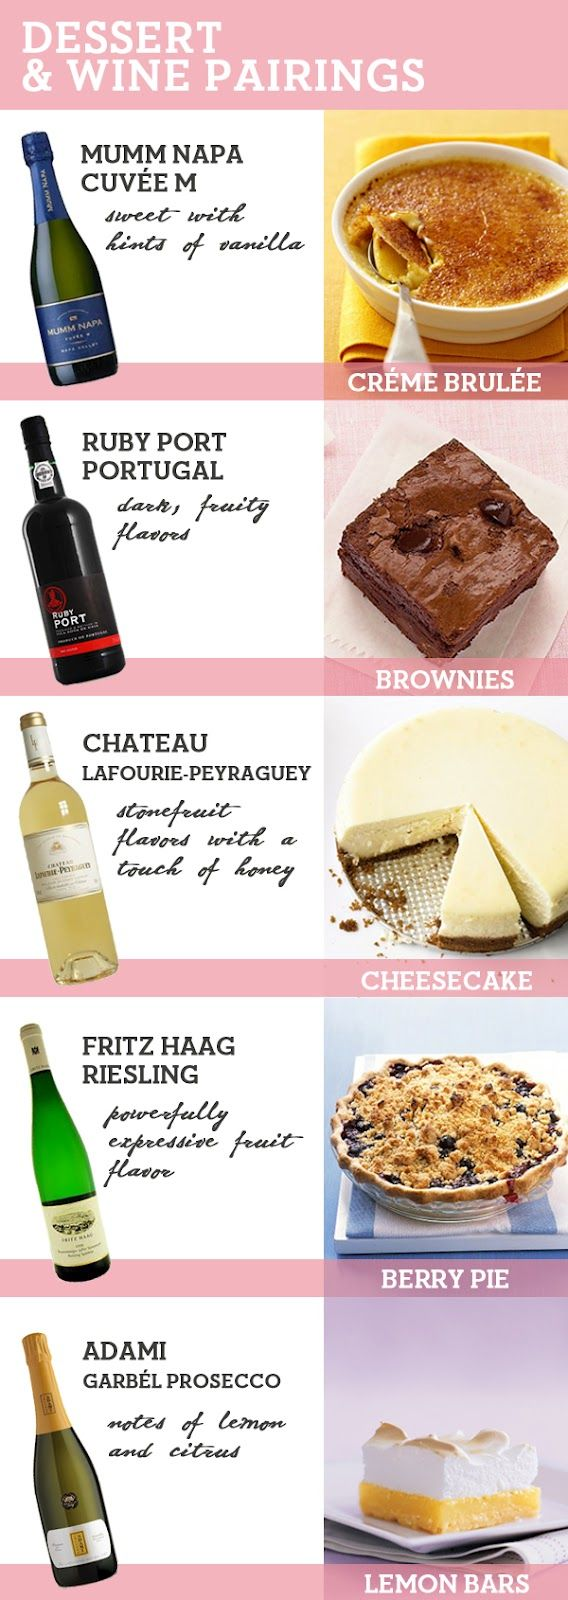 Dessert and Wine pairings for every occasion